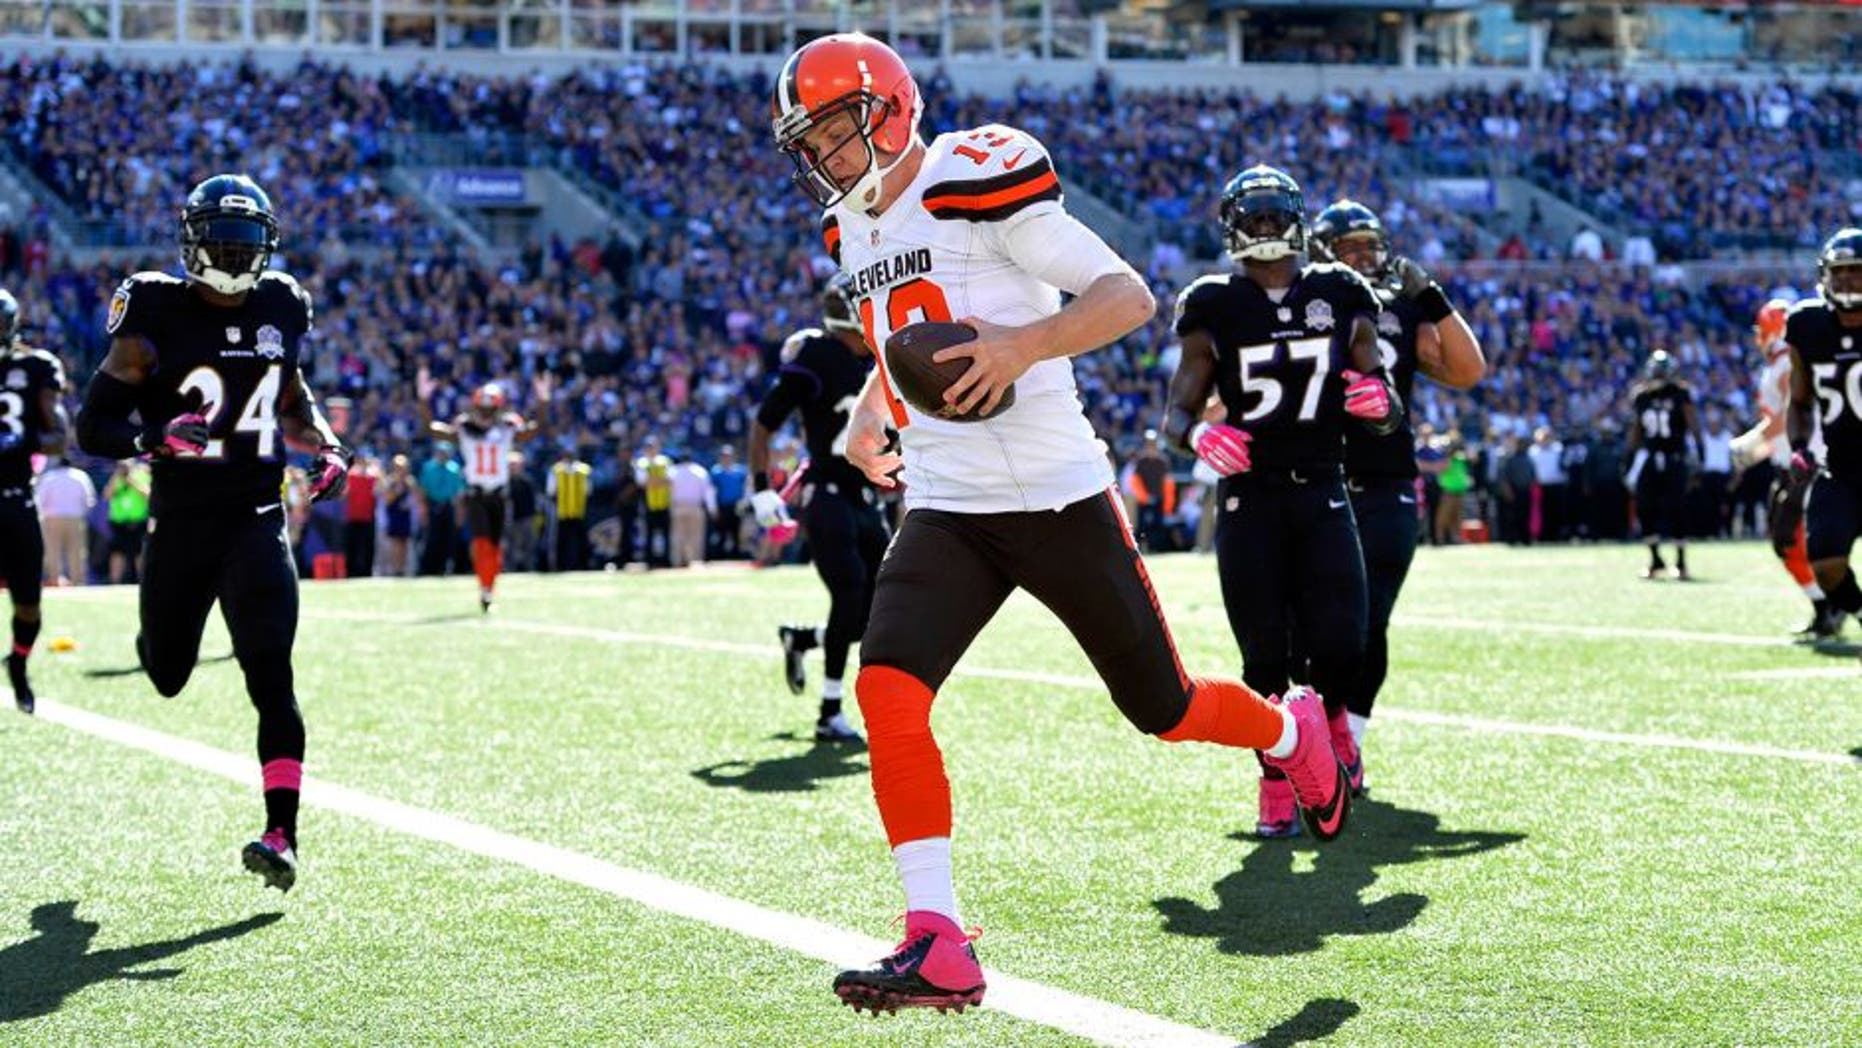 Oct 11, 2015; Baltimore, MD, USA; Cleveland Browns quarterback Josh McCown (13) scores a touchdown during the third quarter against the Baltimore Ravens at M&T Bank Stadium. Mandatory Credit: Tommy Gilligan-USA TODAY Sports